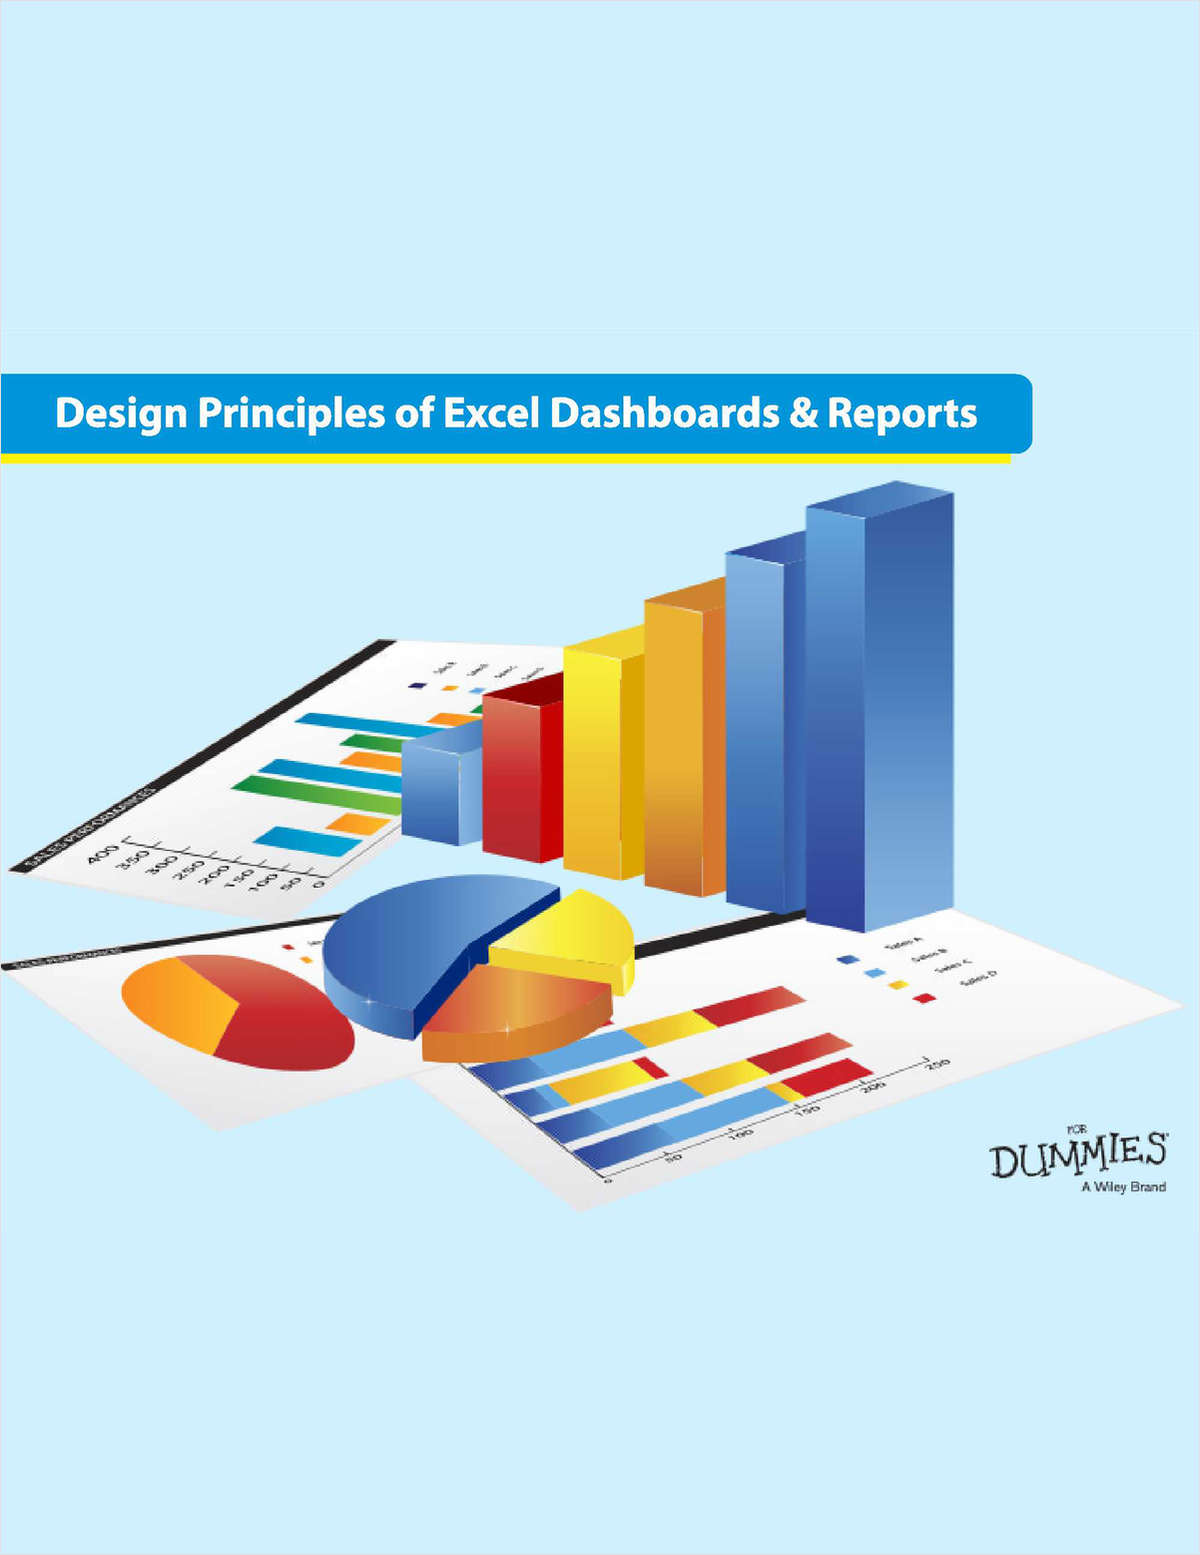 Design Principles of Excel Dashboards and Reports